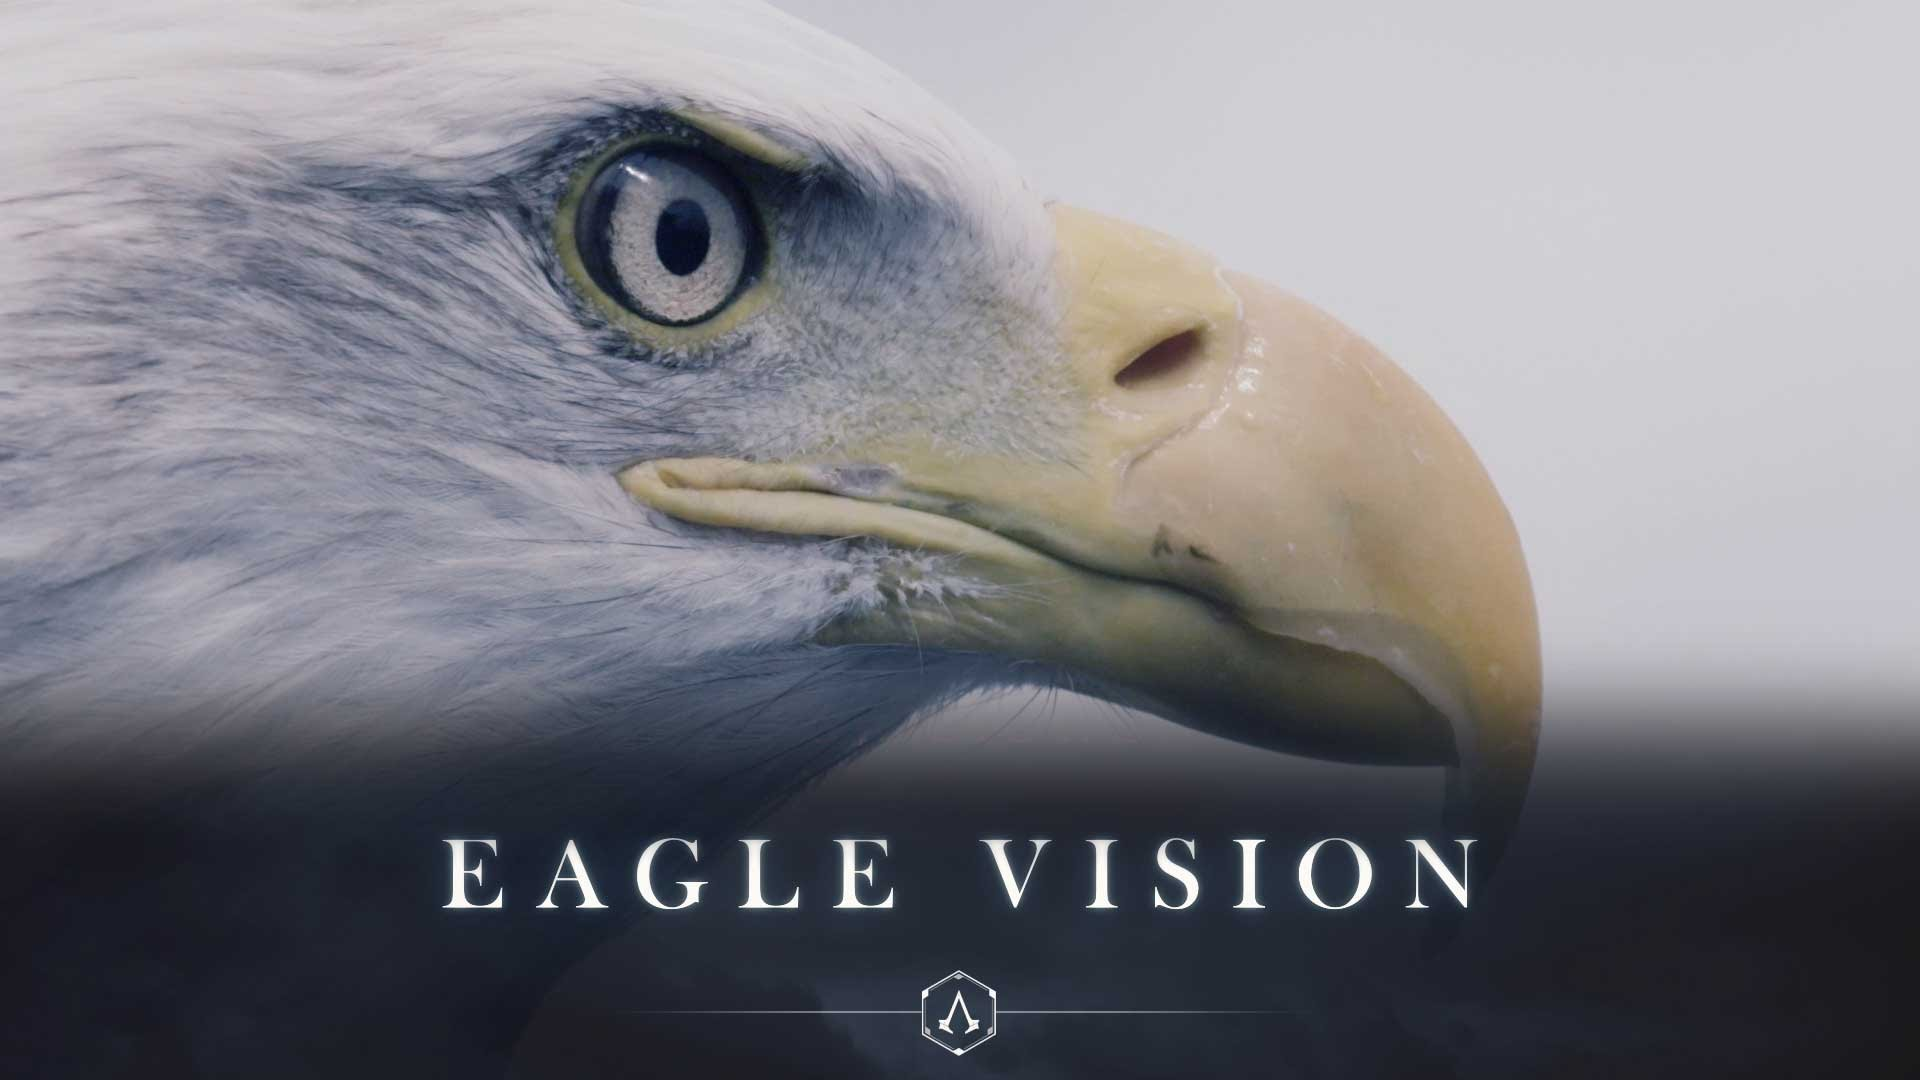 Ubisoft Explore London Via Eagle Vision For Assassin's Creed Syndicate's Release